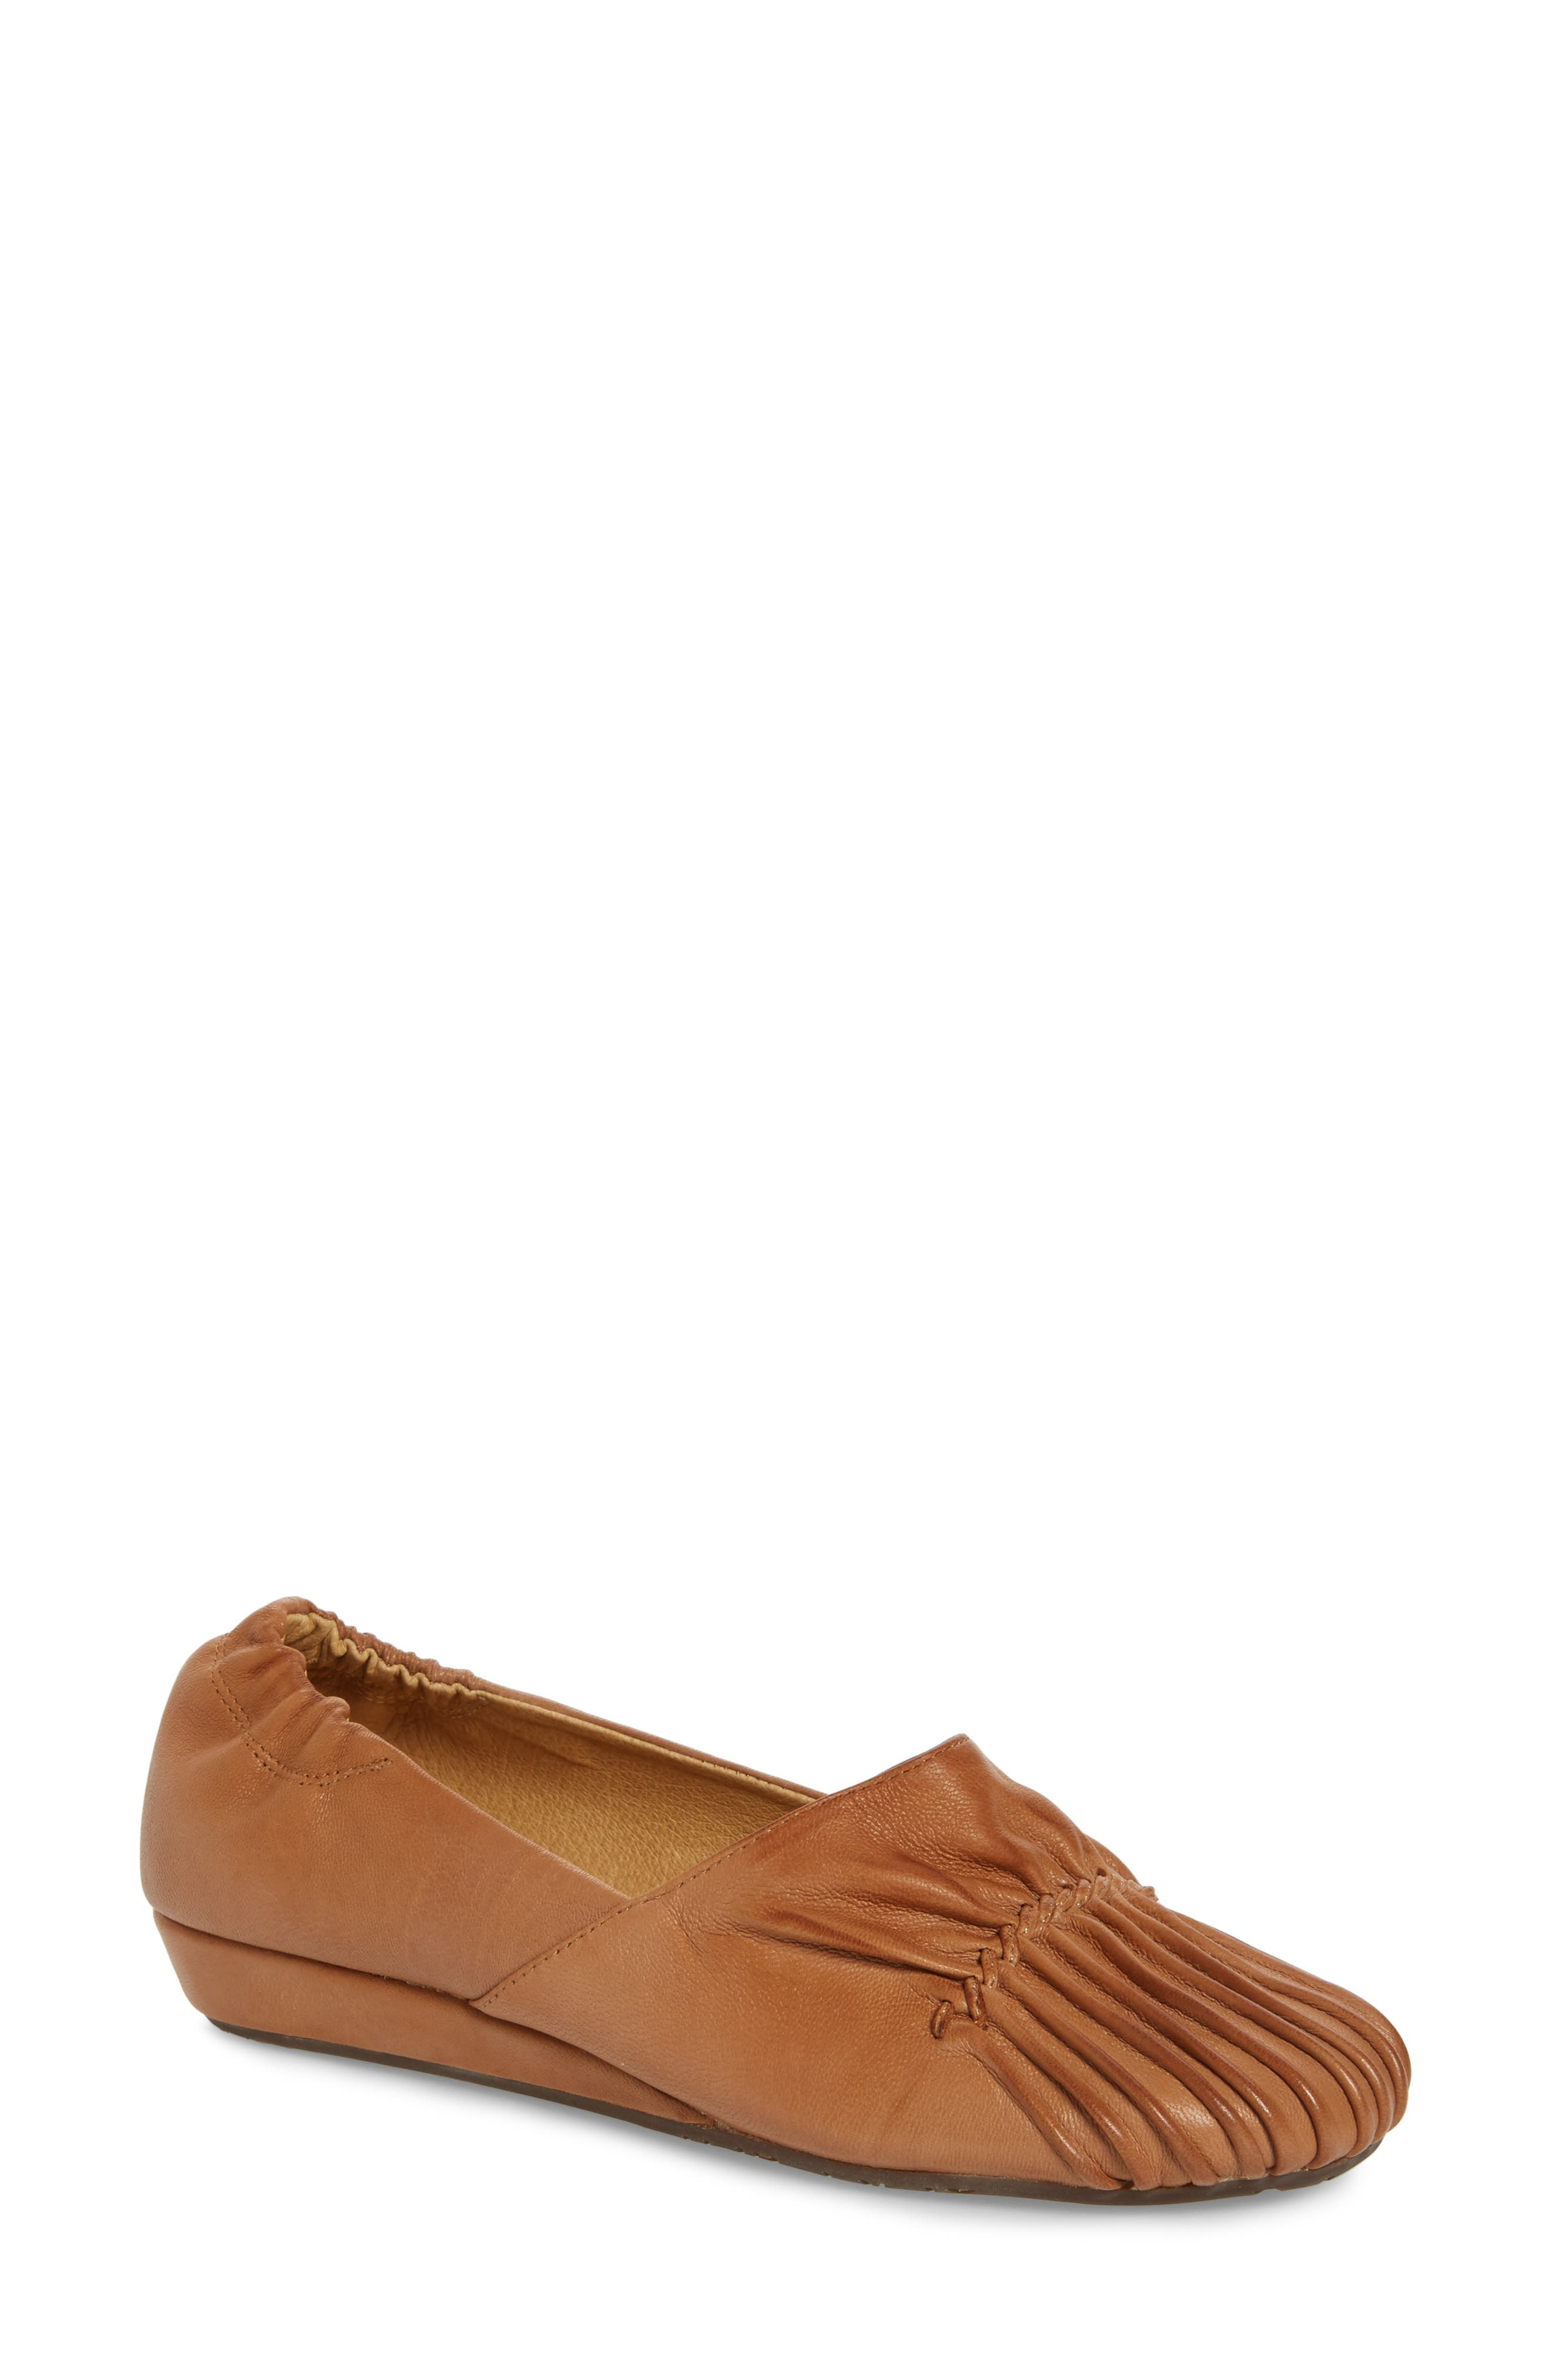 Vic Low Pleated Wedge,                             Main thumbnail 1, color,                             200